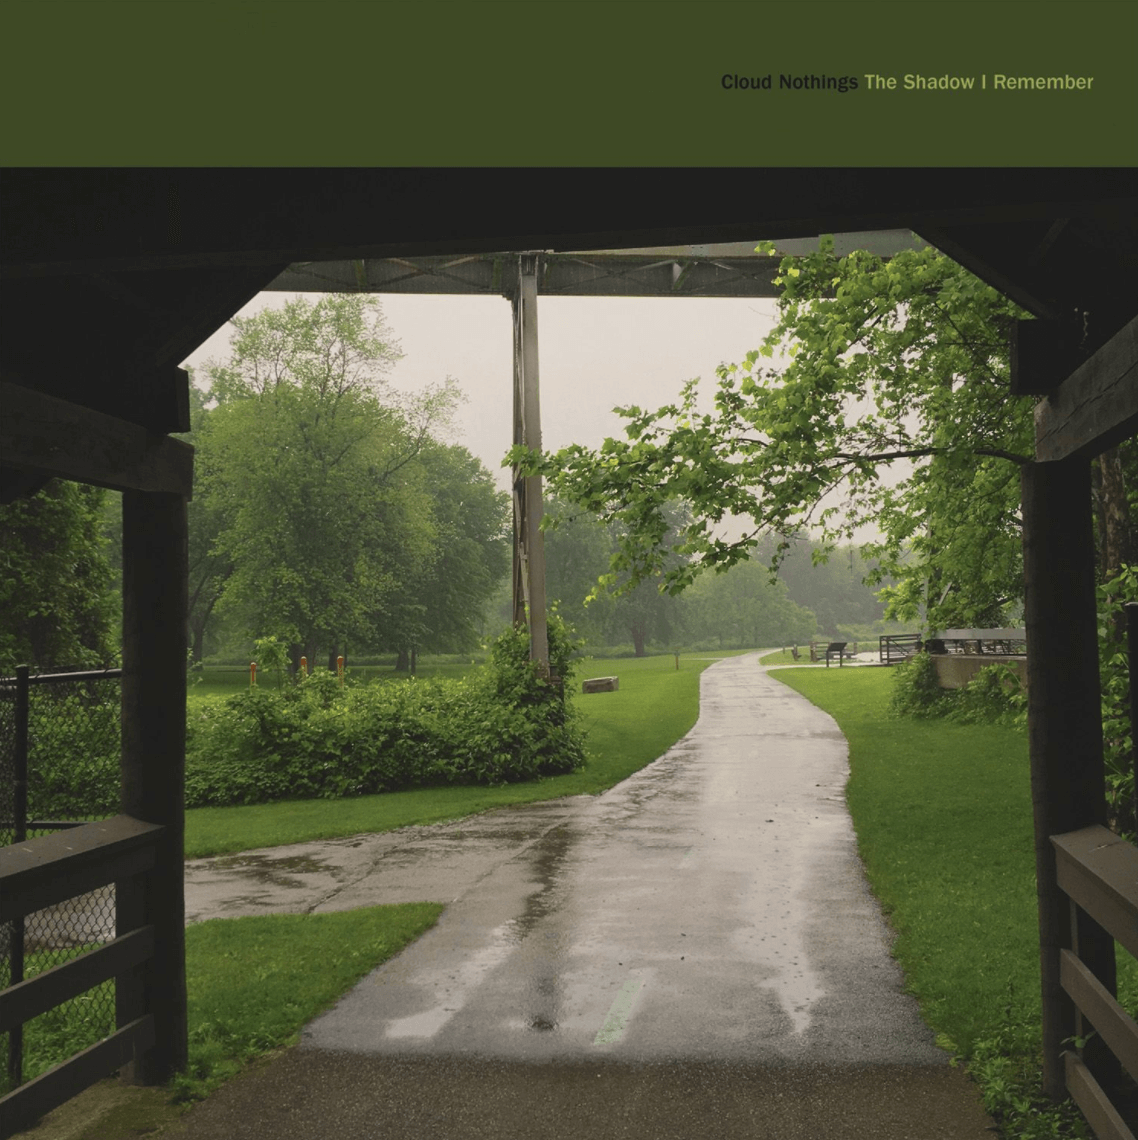 The Shadow I Remember Album by Cloud Nothings album review by Adam Fink for Northern Transmissions